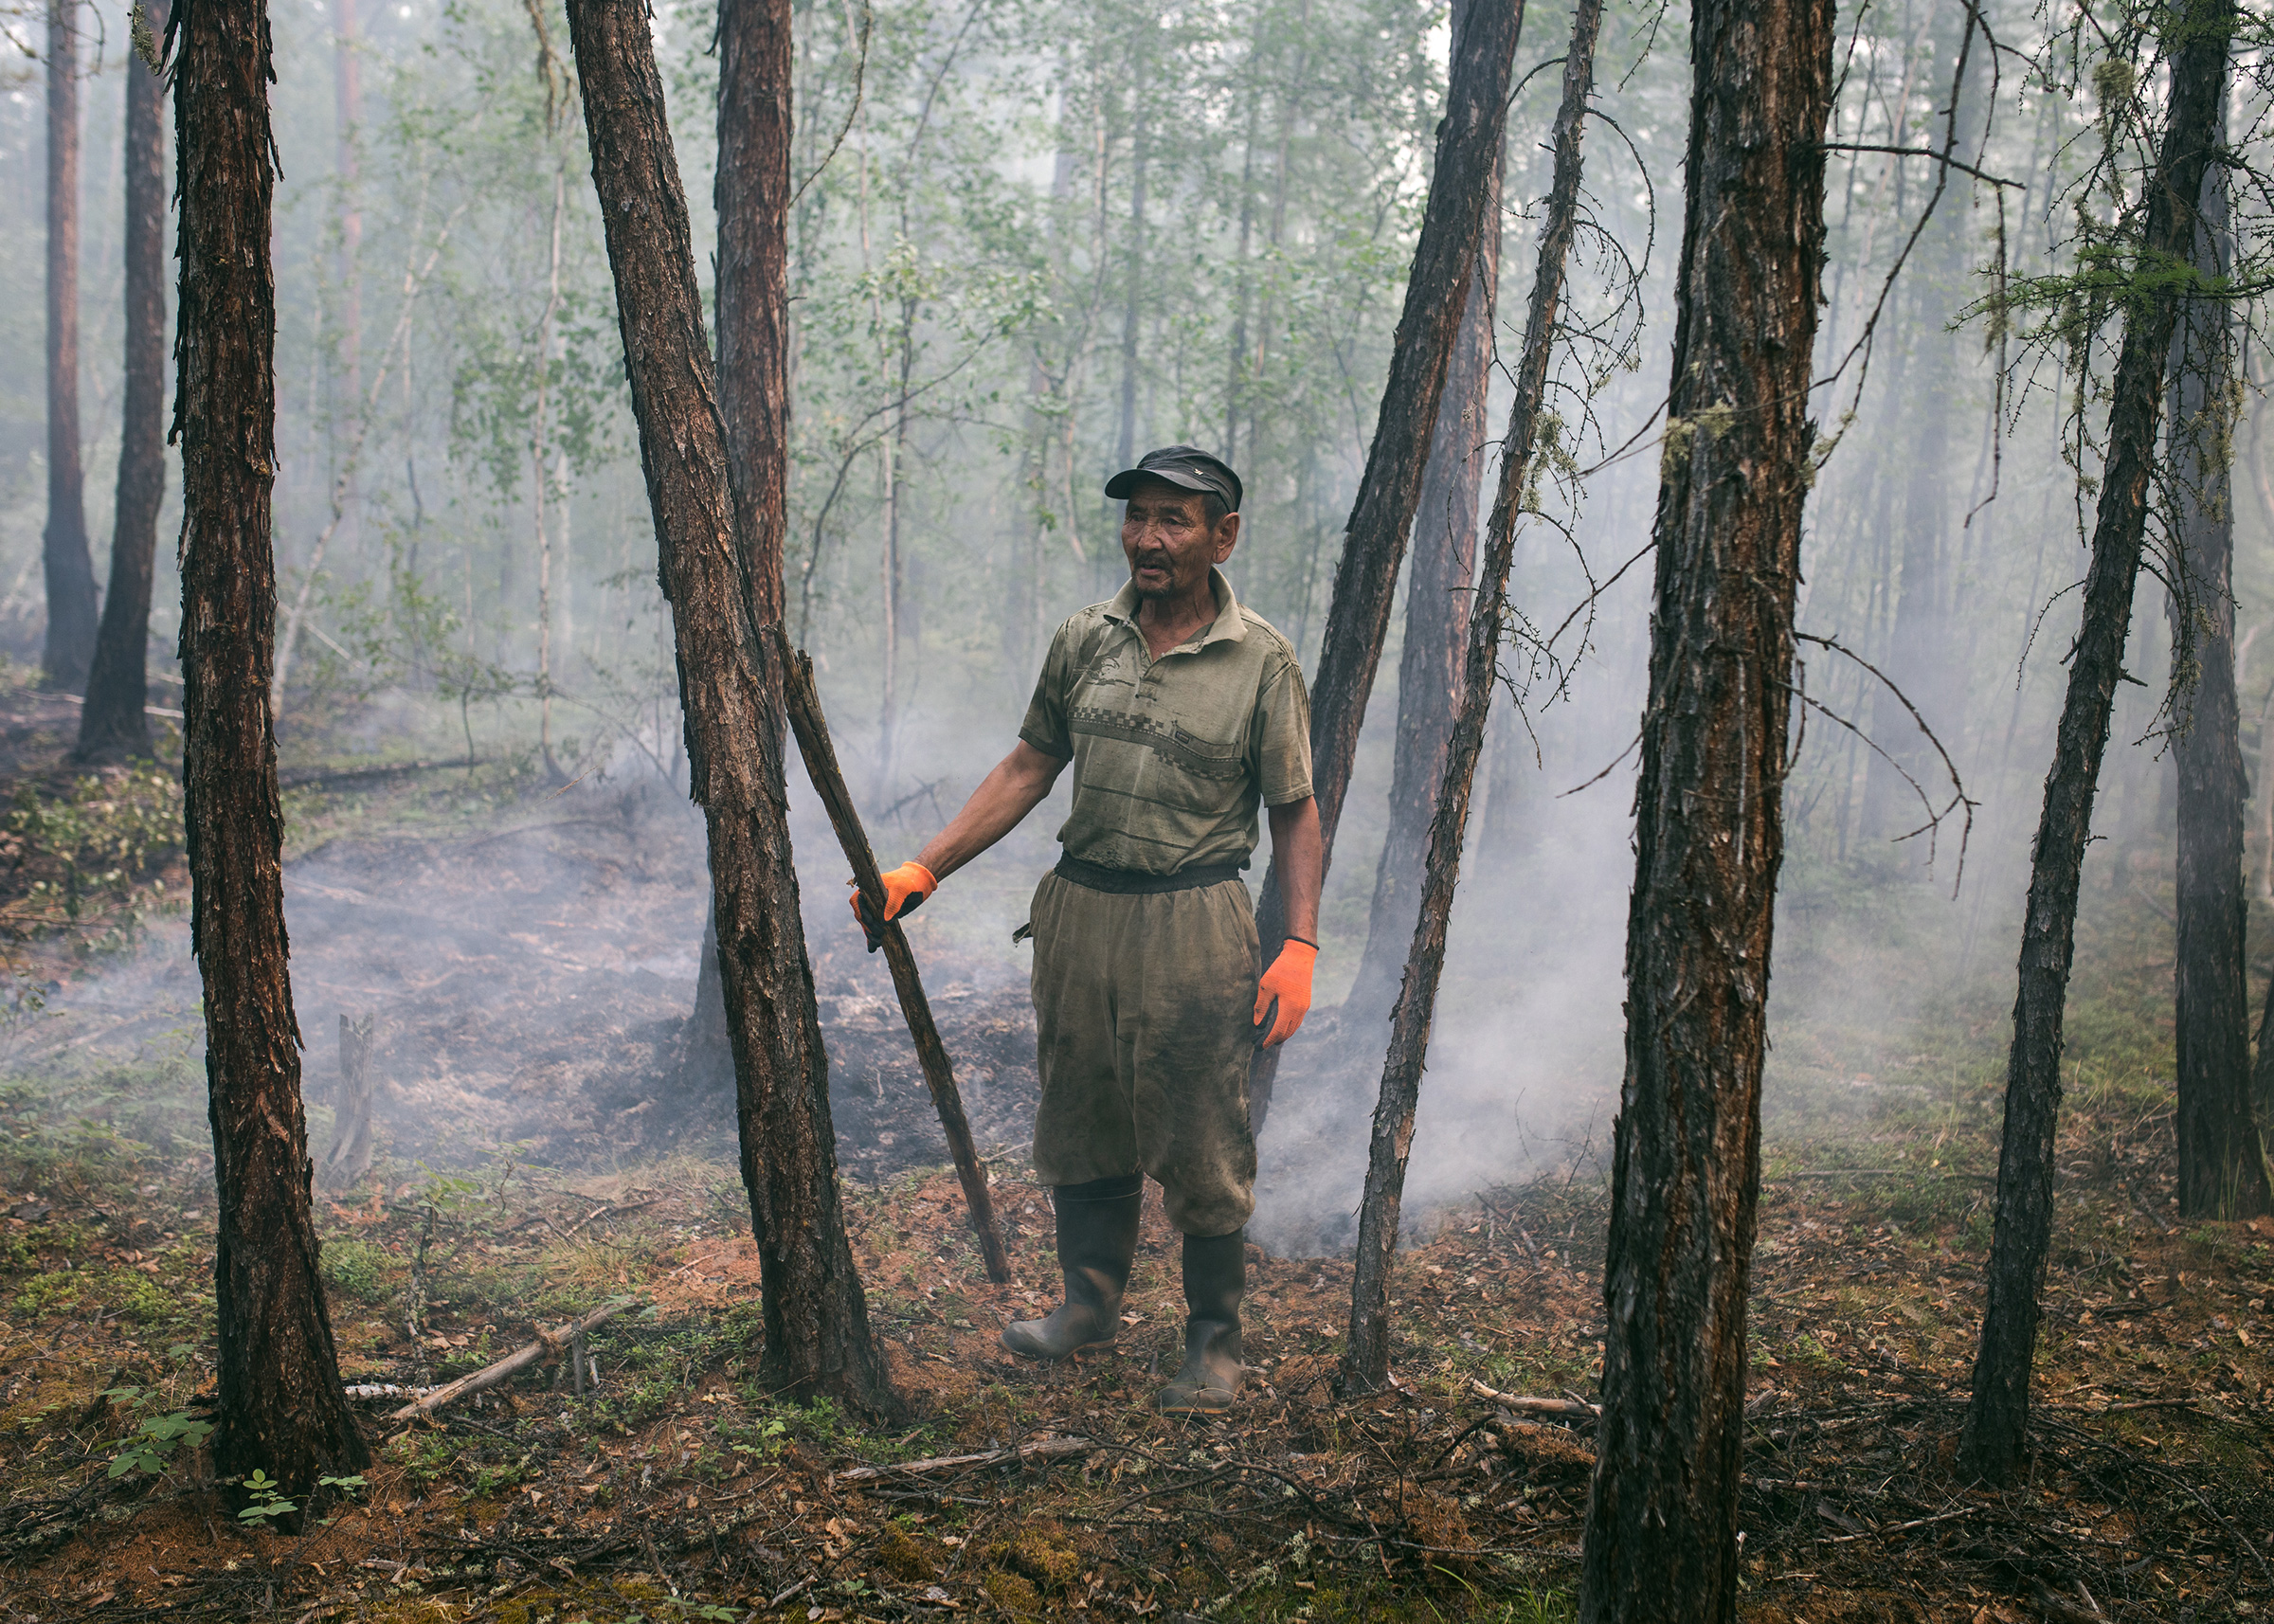 Villagers in Siberia, Facing Wildfires and a Warming Climate, Battle to Protect Their Homes